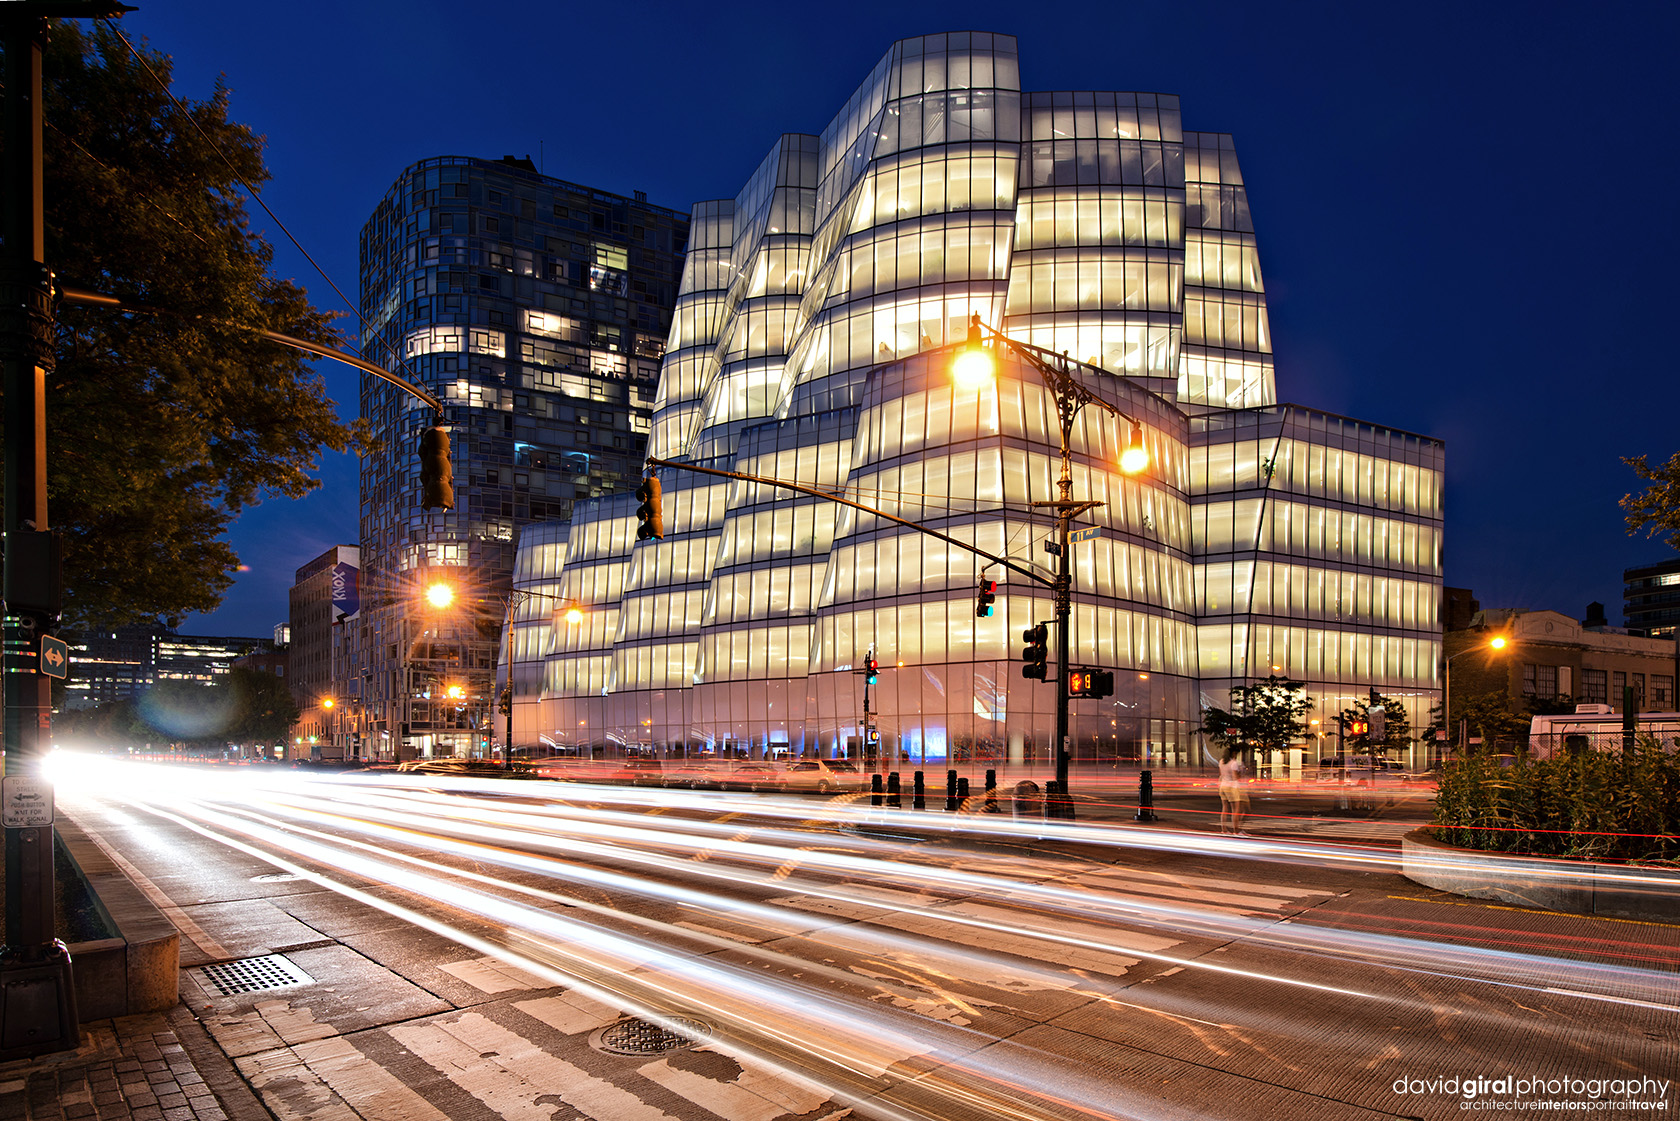 Rush hour at IAC Building by architect Frank Ghery Nikon D800 + Nikkor 16-35mm F/4.0 G VRII @ 27mm | ISO400 - 1s - F/8.0